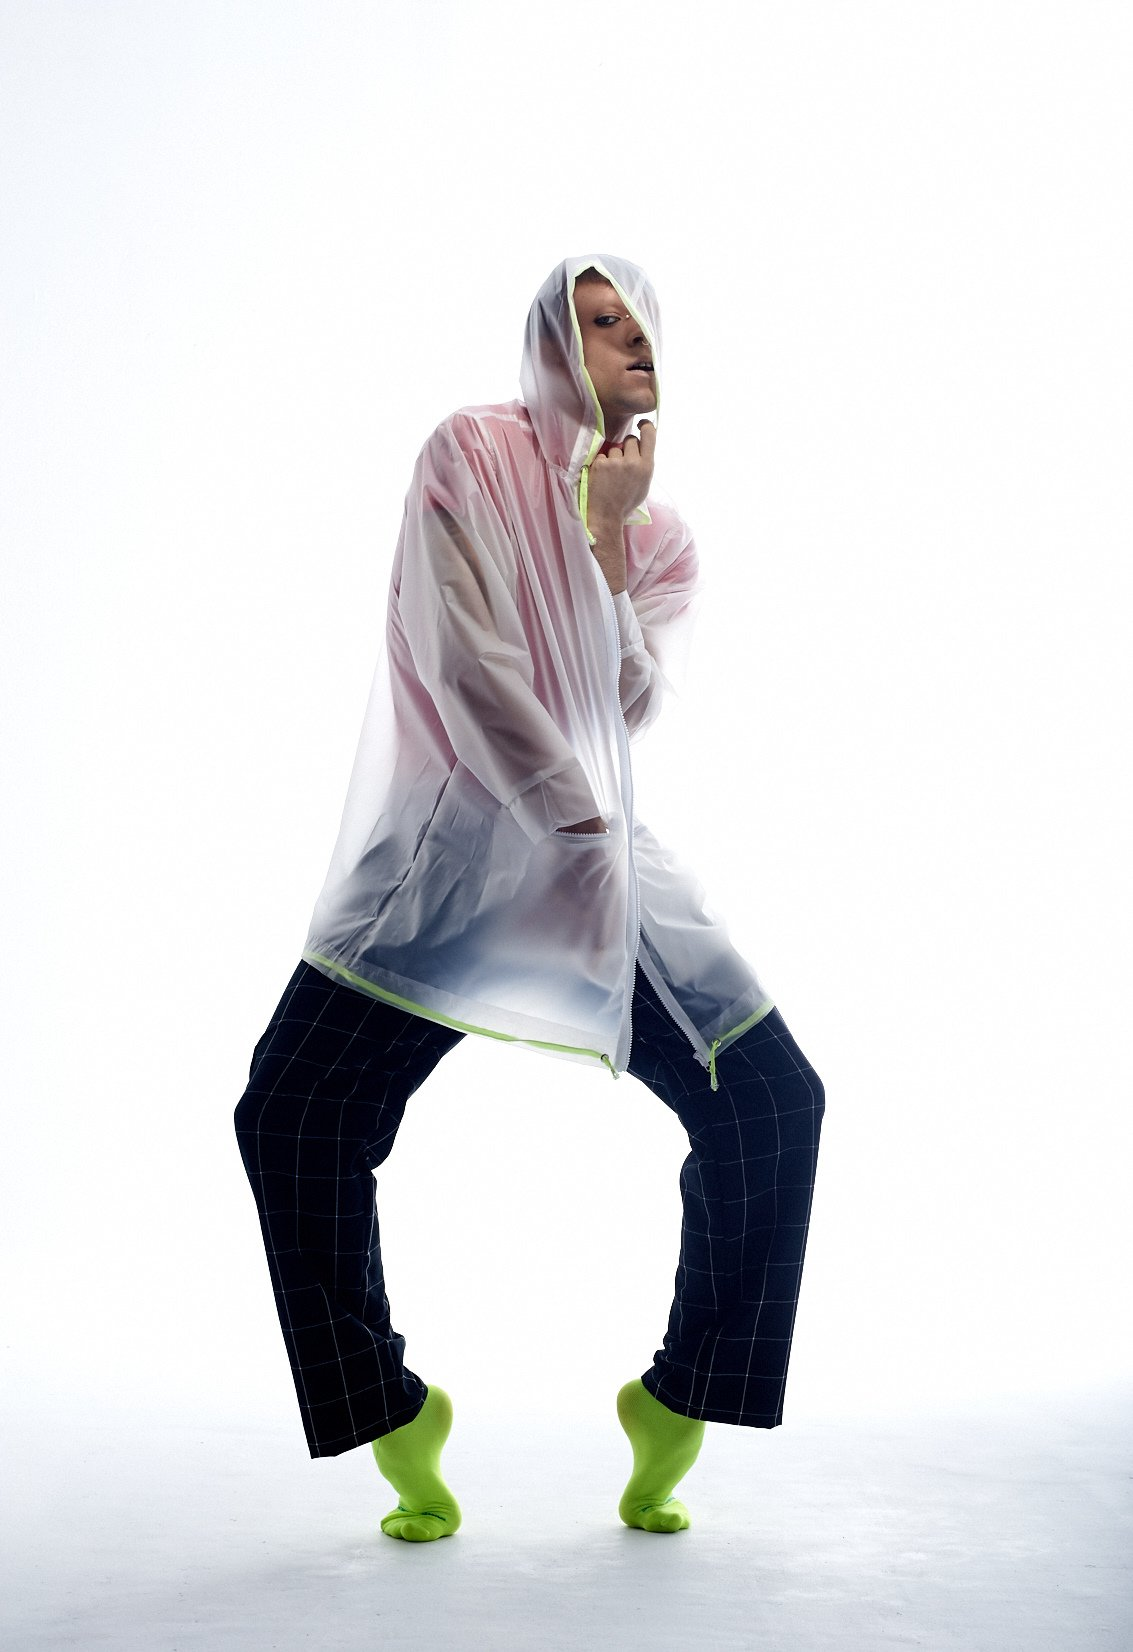 Raincoat Ed. #13 Translucent White/Neon